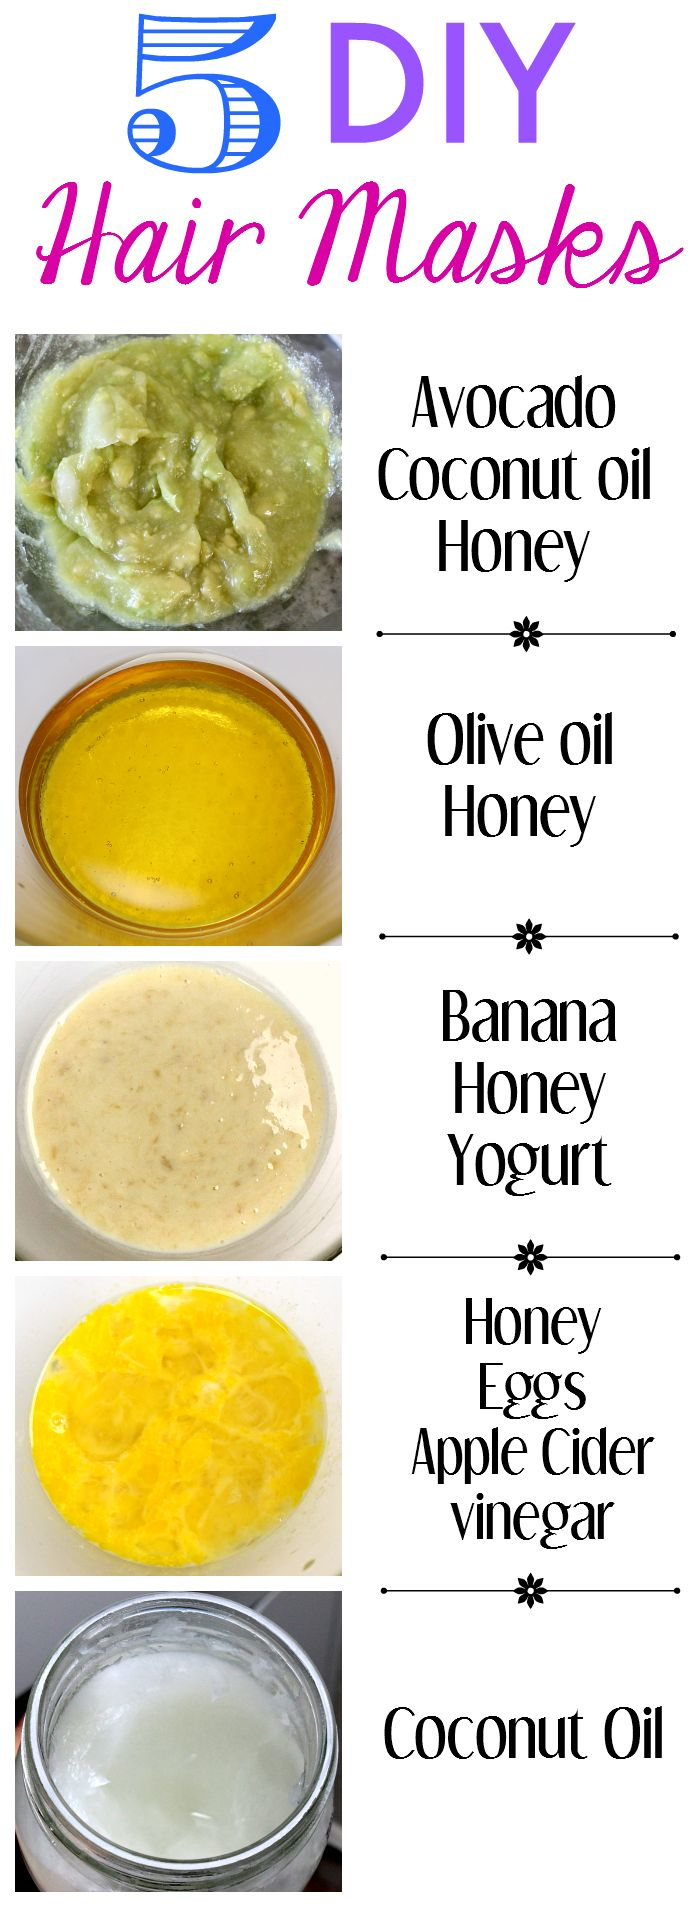 5 simple DIY hair mask recipes with three or less ingredients. http://www.peekandponder.com/2014/05/5-diy-hair-masks.html